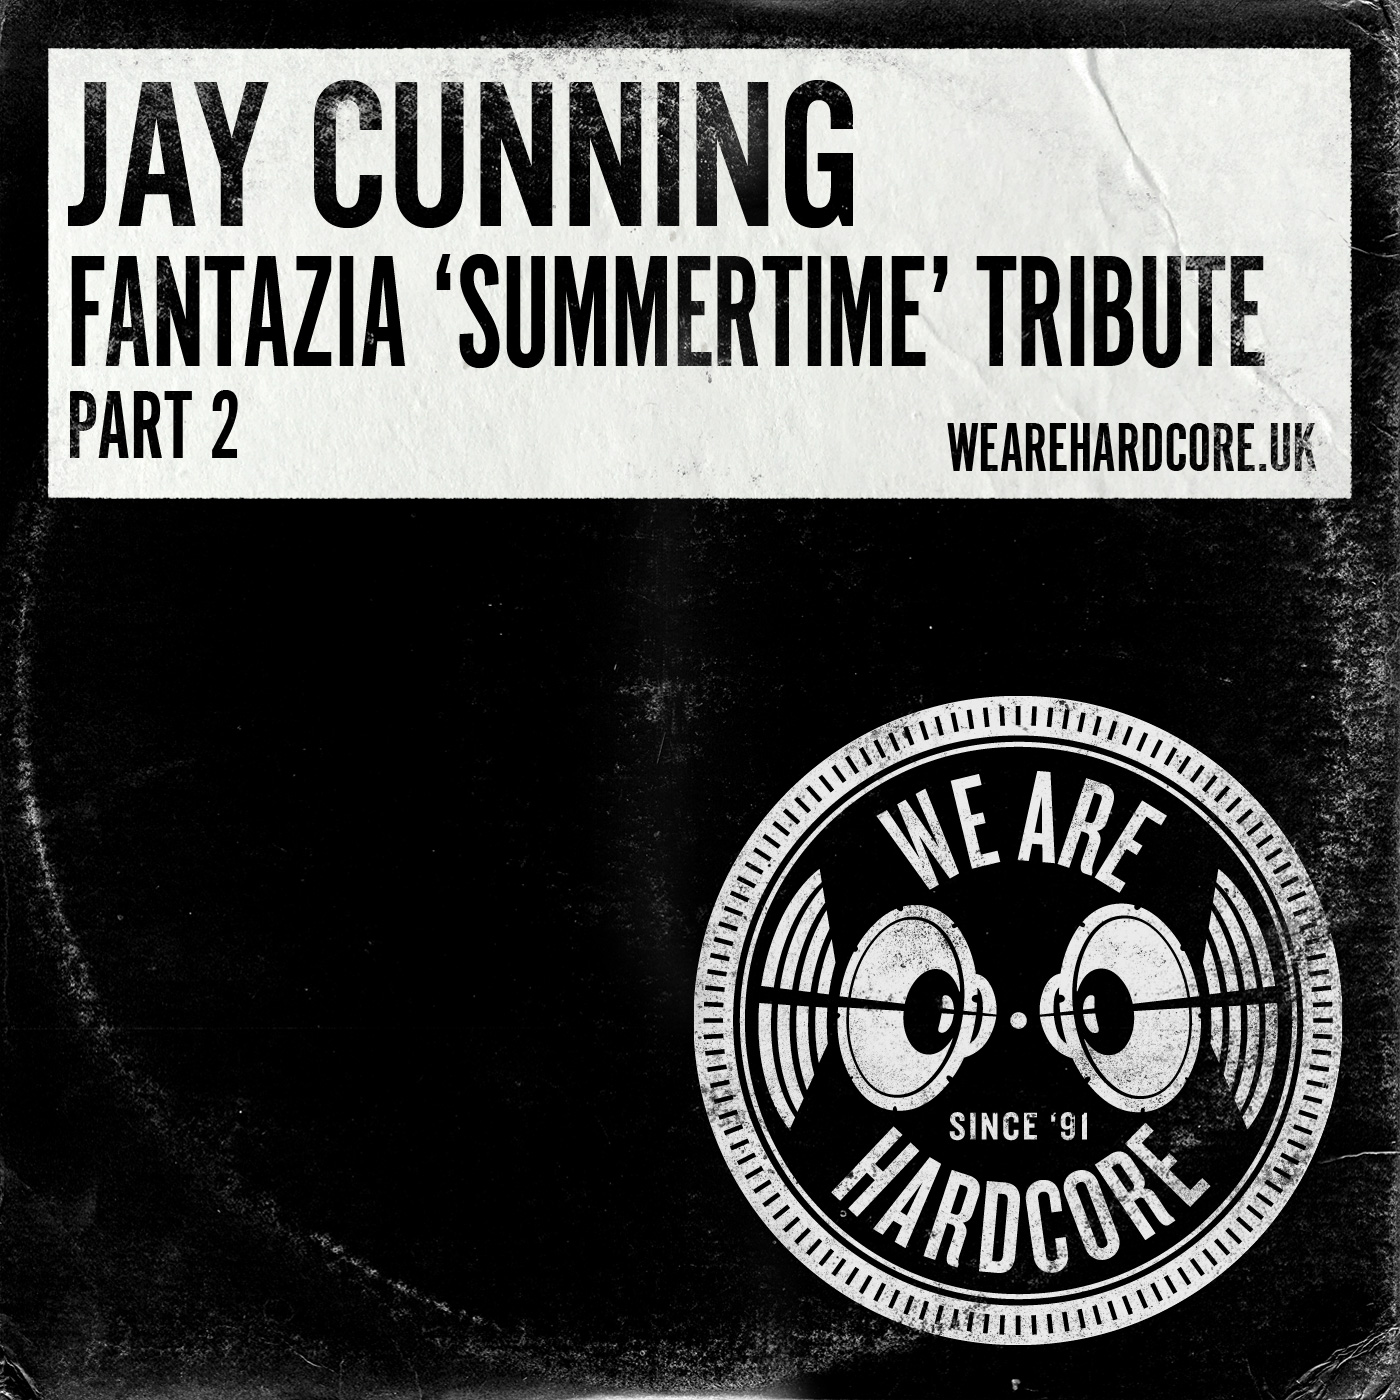 Fantazia 'Summertime' 1992 Tribute [PART 2] - Jay Cunning WE ARE HARDCORE